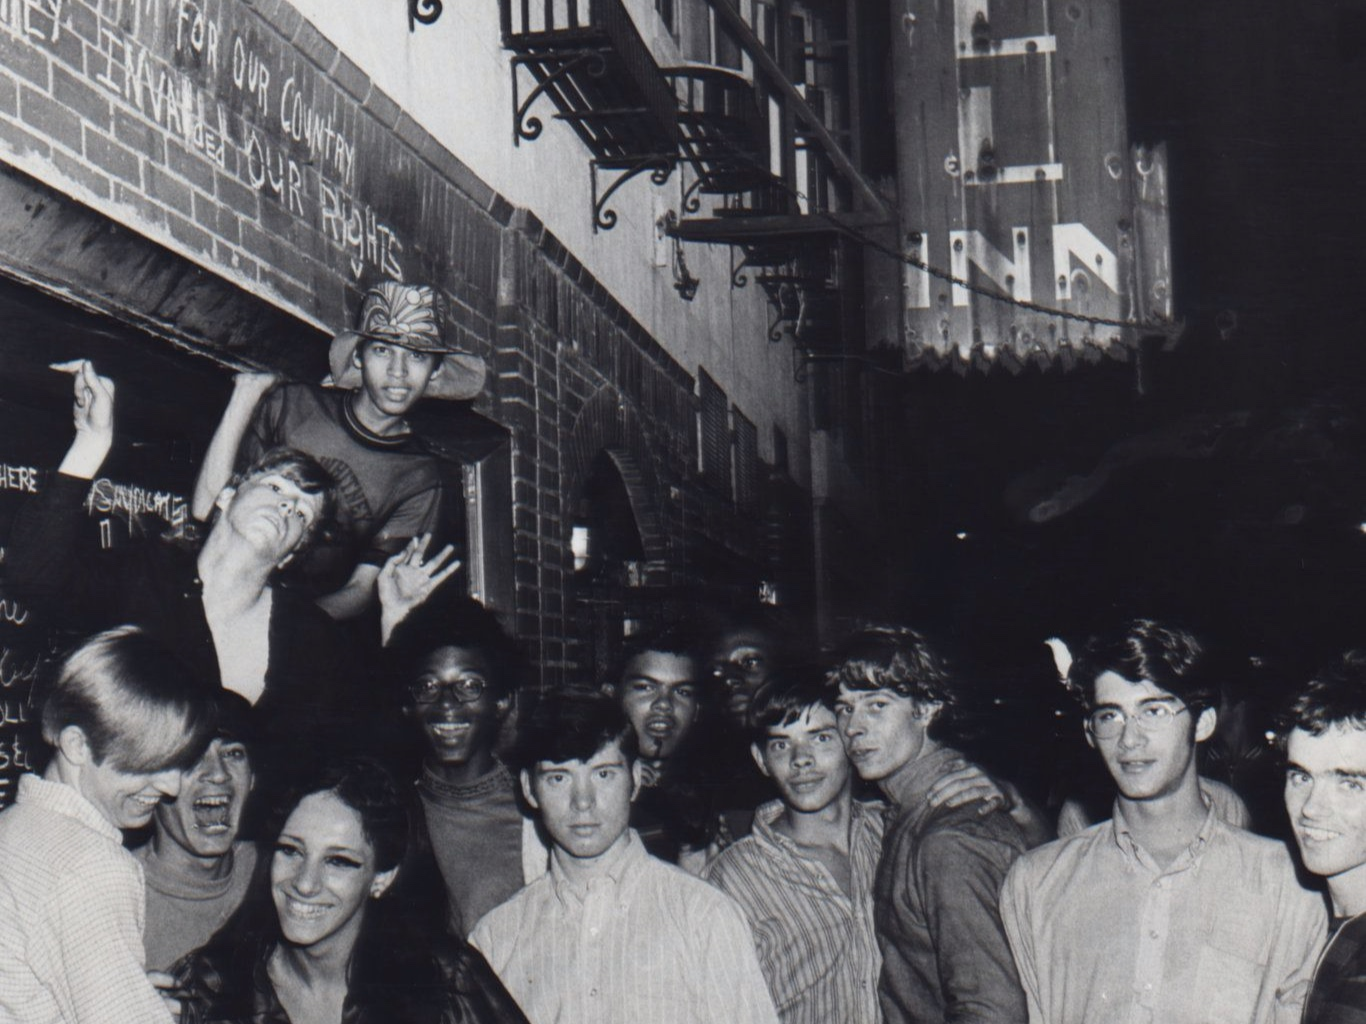 Unidentified young people celebrate outside of the Stonewall Inn (53 Christopher Street), after the riots, 1969. By Fred W. McDarrah/Getty Images.